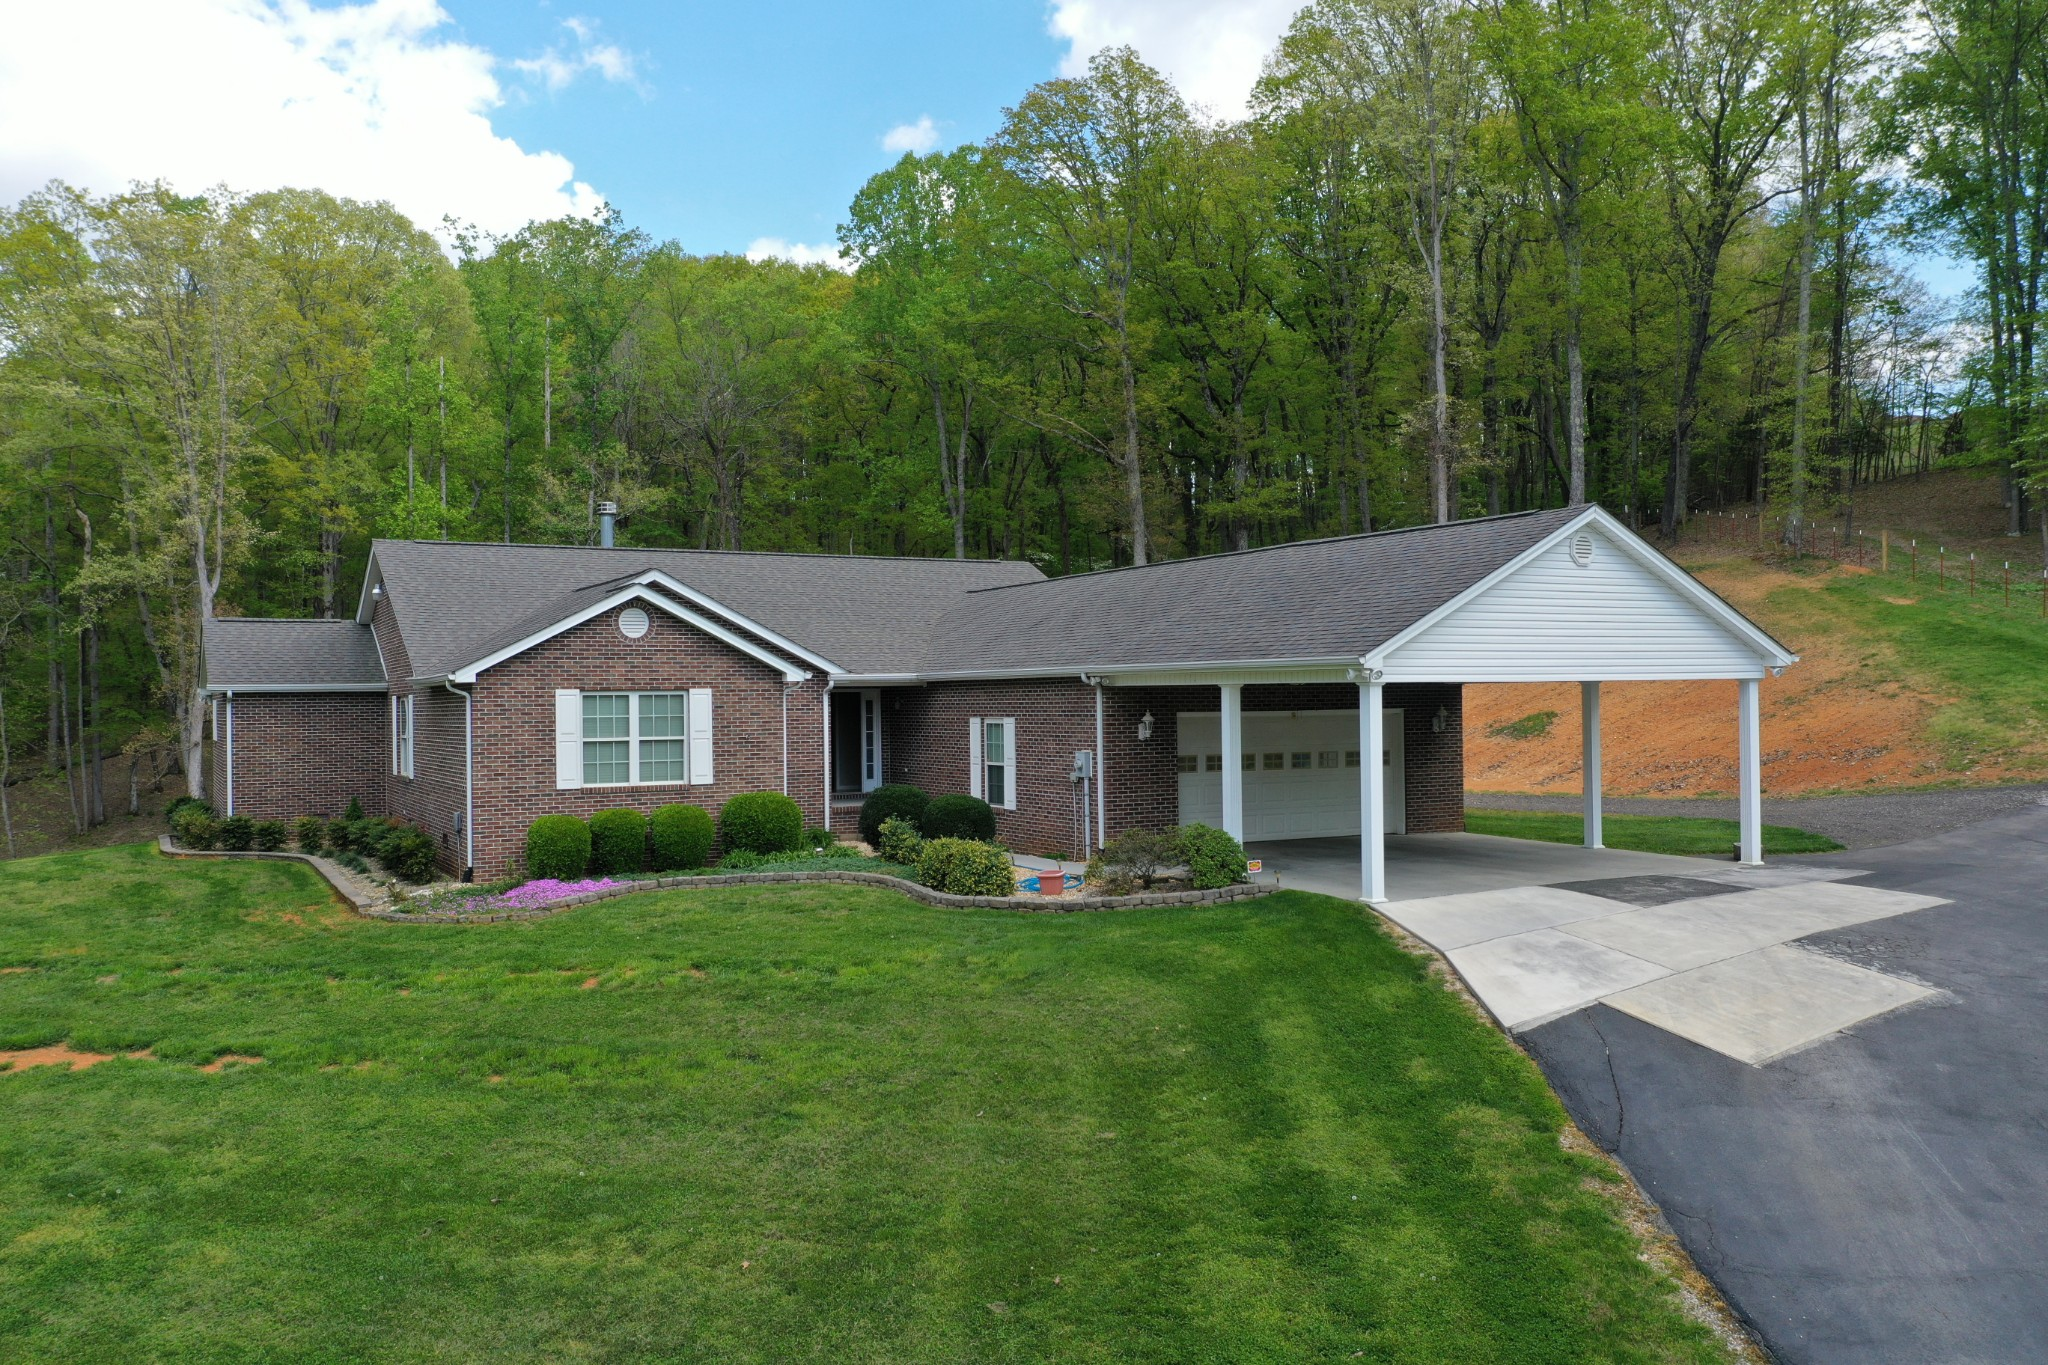 415 Cline Rd Property Photo - Dandridge, TN real estate listing